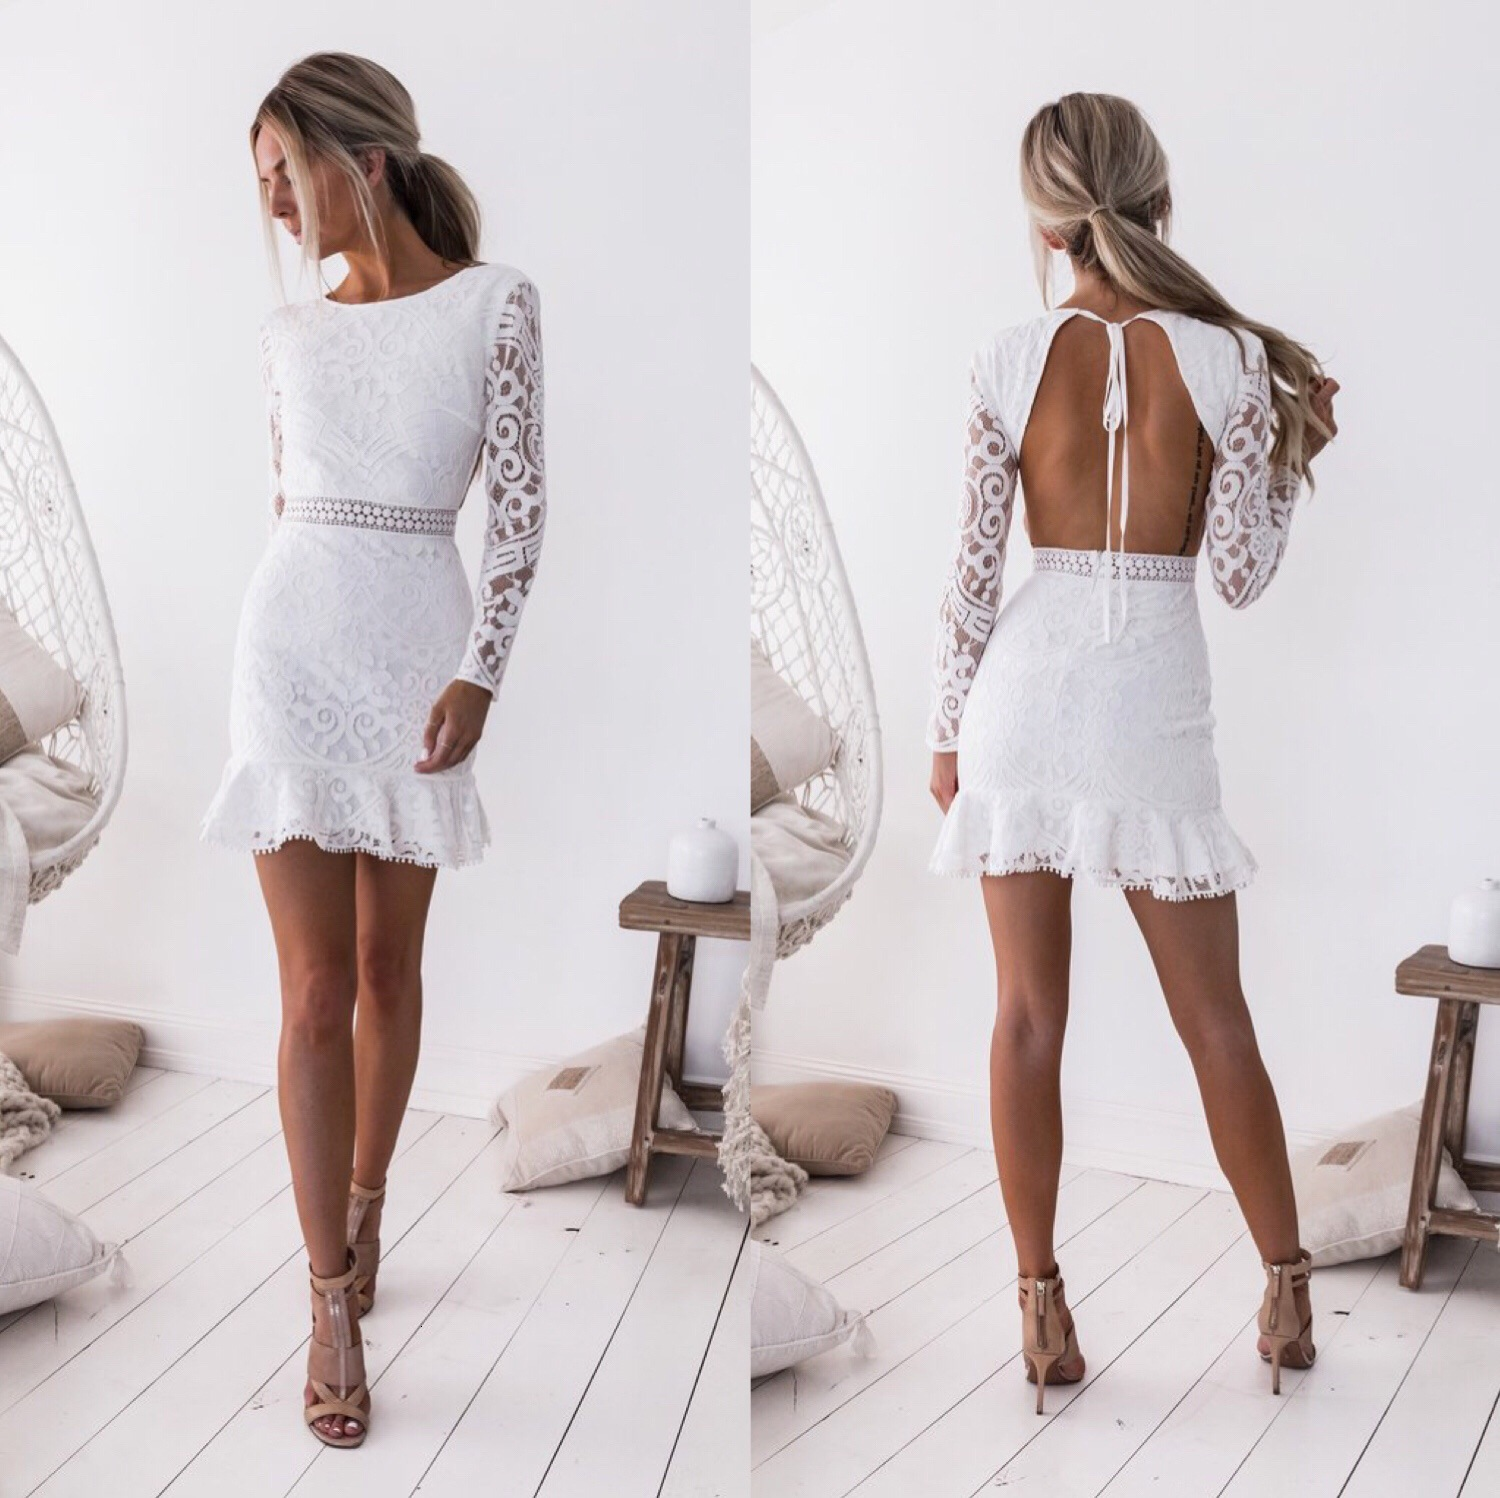 BacklakeGirls 2019 Full Sleeve White Lace Women Dress Sexy Open Back Straps Short Cocktail Dress Short Formal Dresses